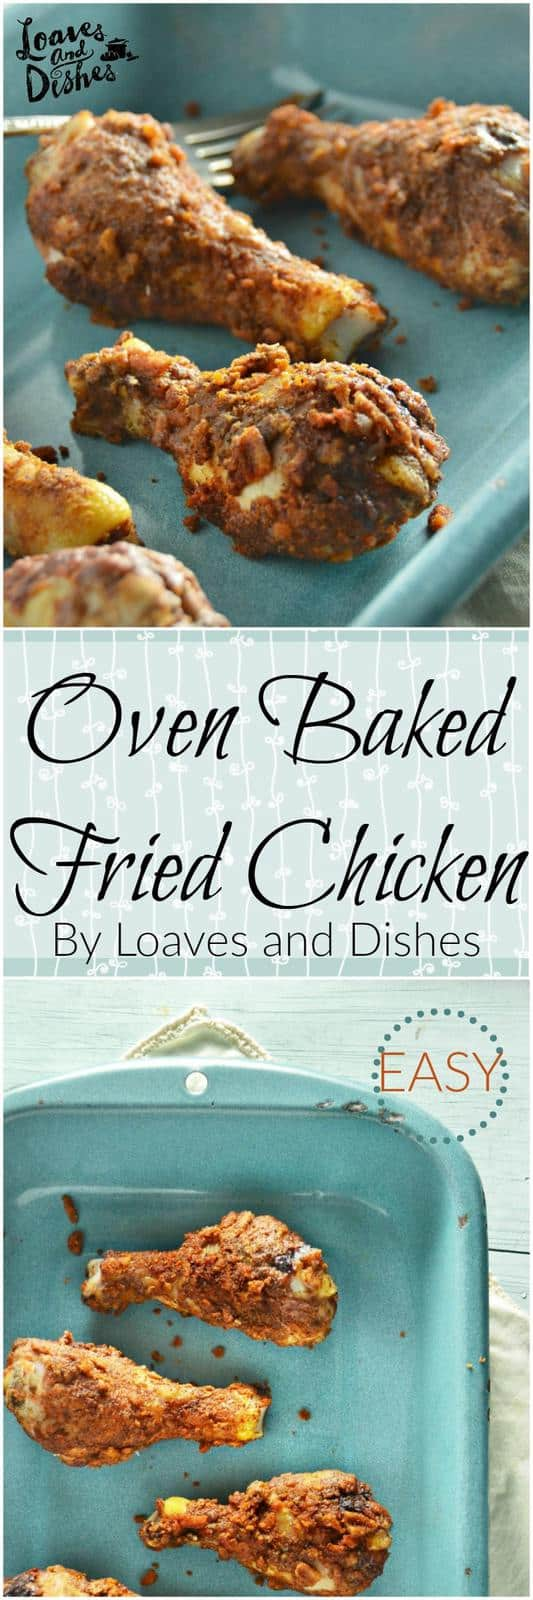 Simple Easy Weeknight Recipe for Oven Baked Fried Chicken with the perfect spicy kick. Kids and Adults love it! Just throw it in the oven and wait for dinner to be ready. Healthy alternative to Deep Fried Chicken